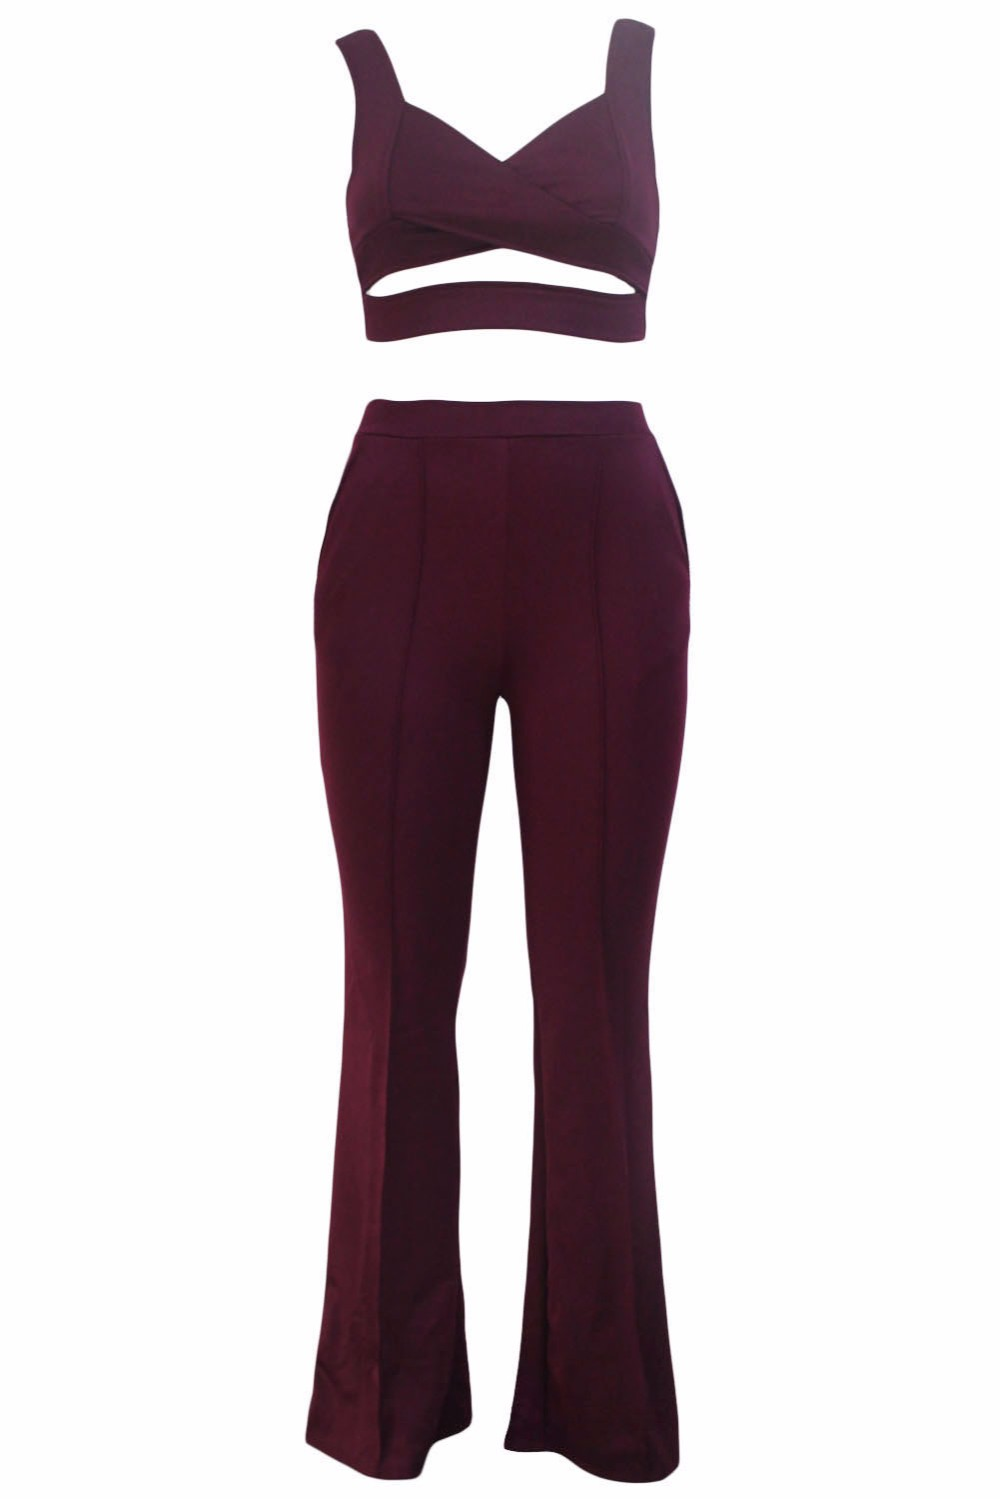 Burgundy-Cross-Front-Crop-Top-and-Pocket-Pant-Set-LC62005-3-42963